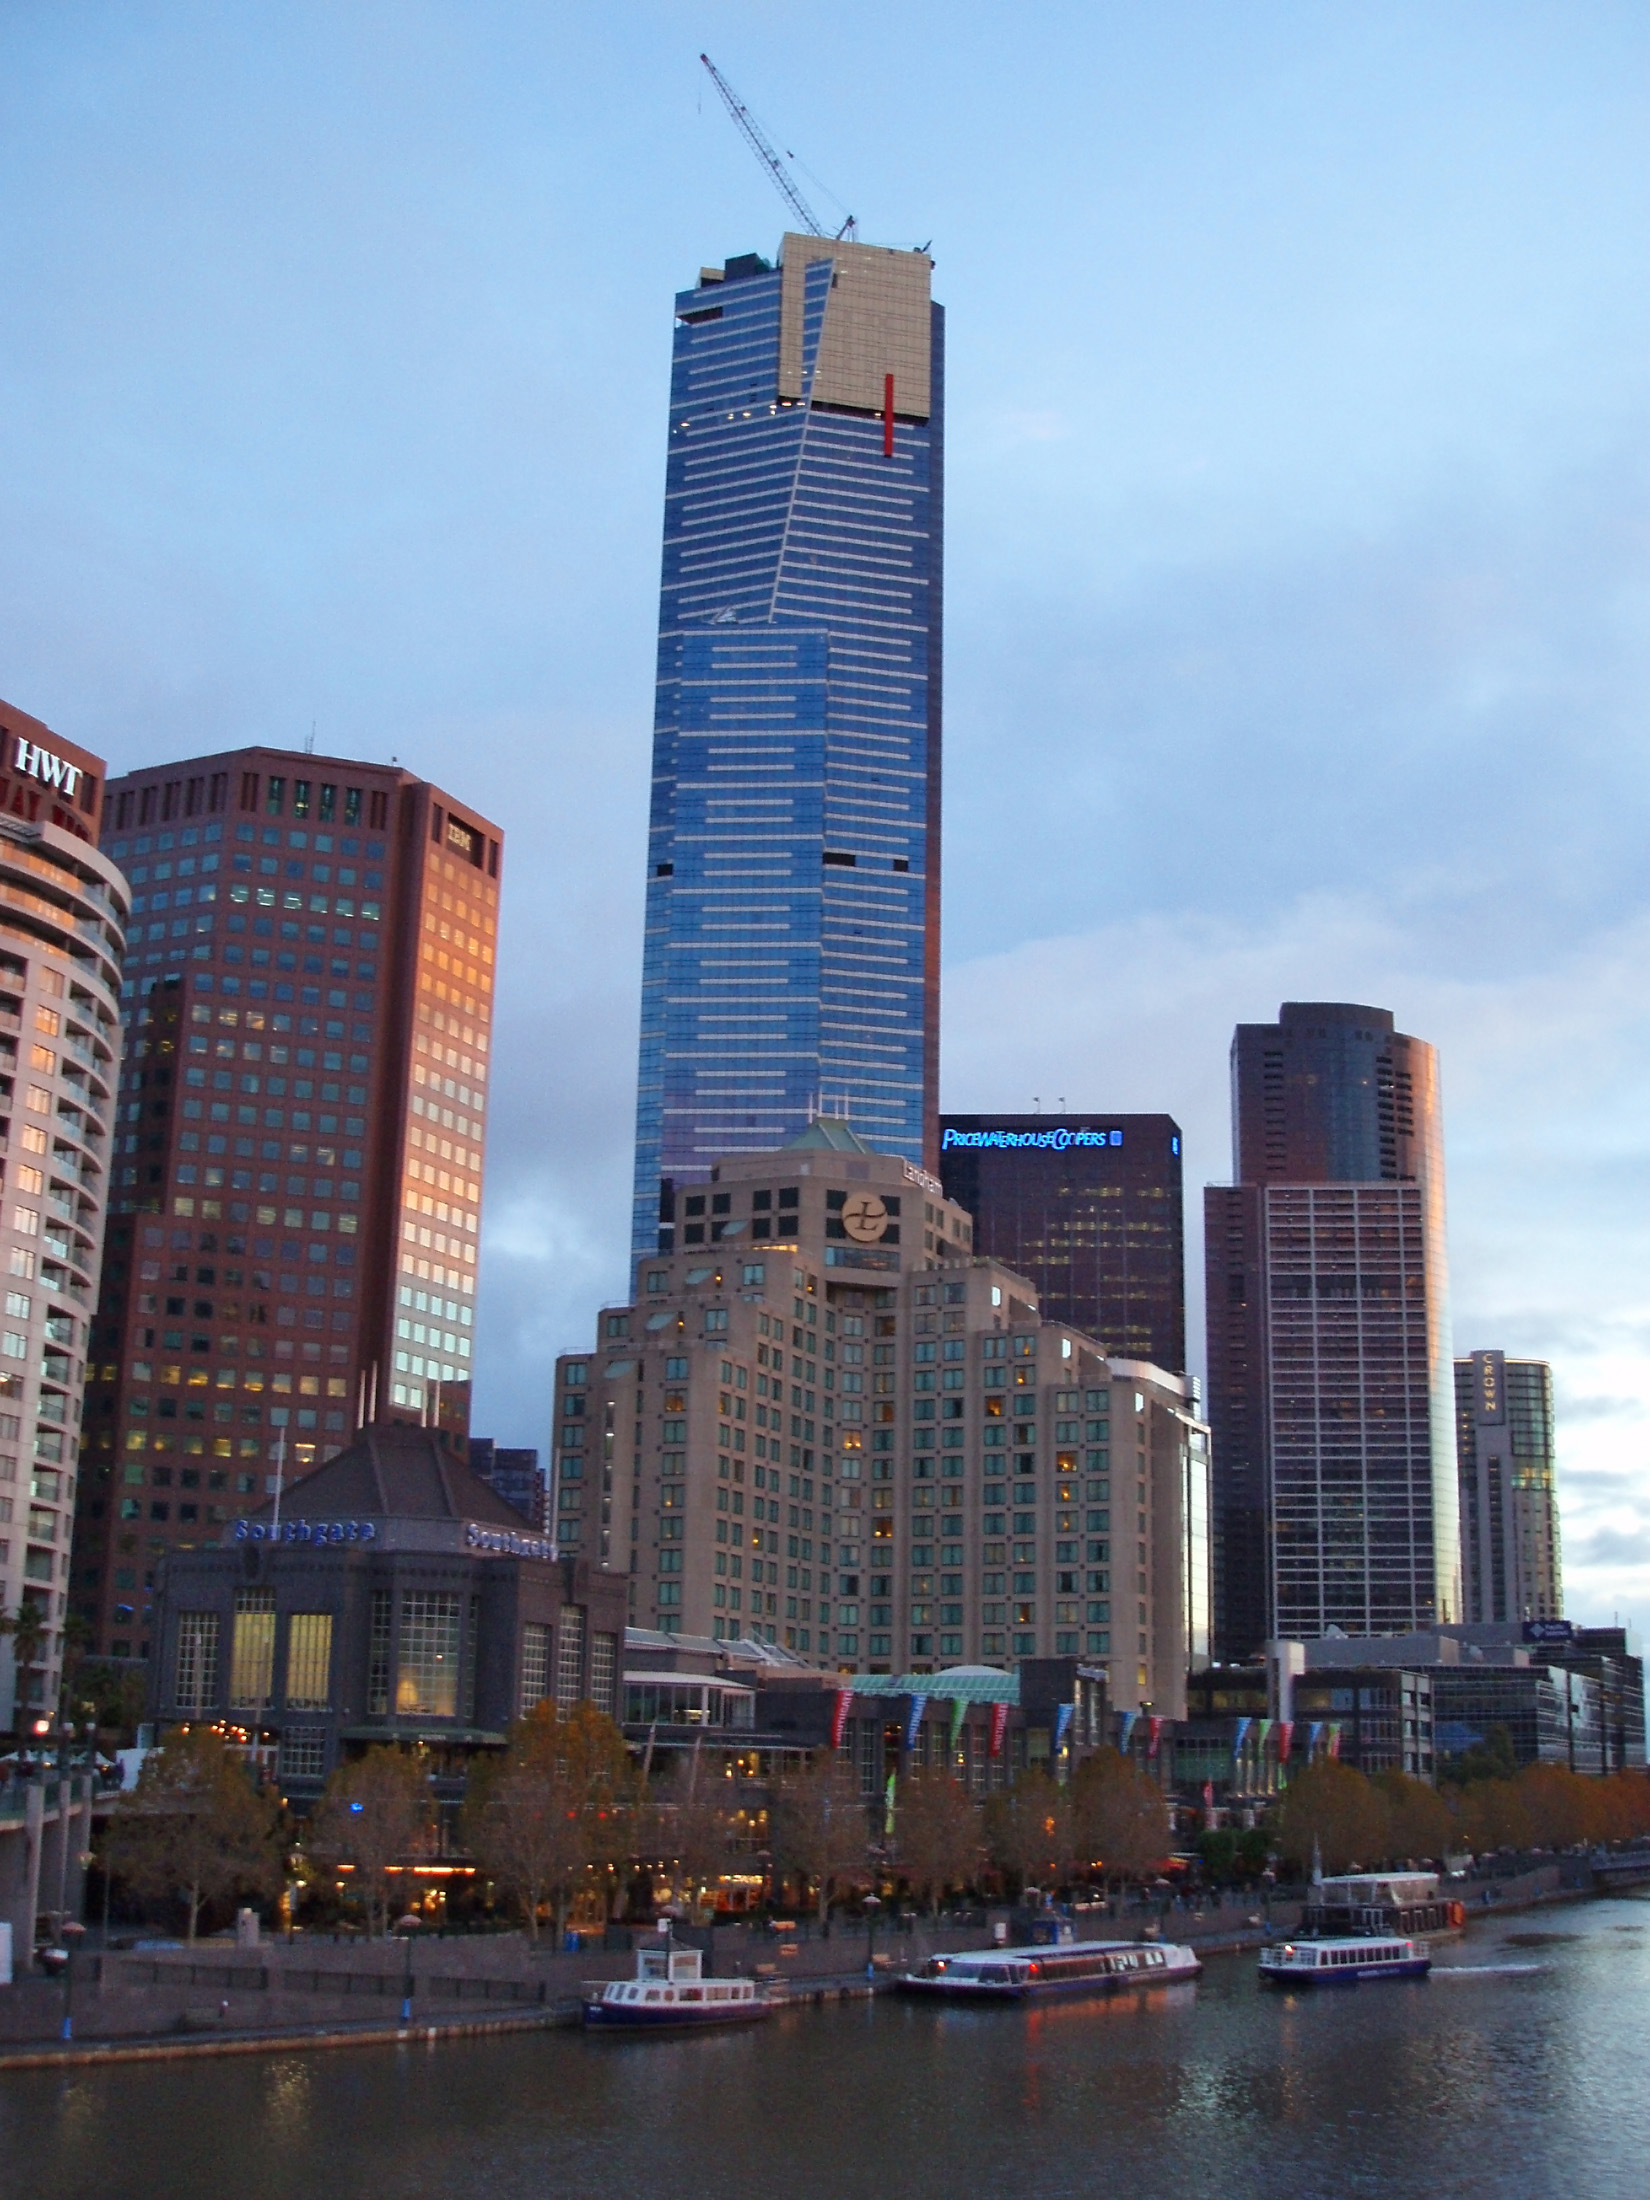 Tallest Architectural Building in Melbourne Australia, The Eureka Tower, Near the Yarra River.